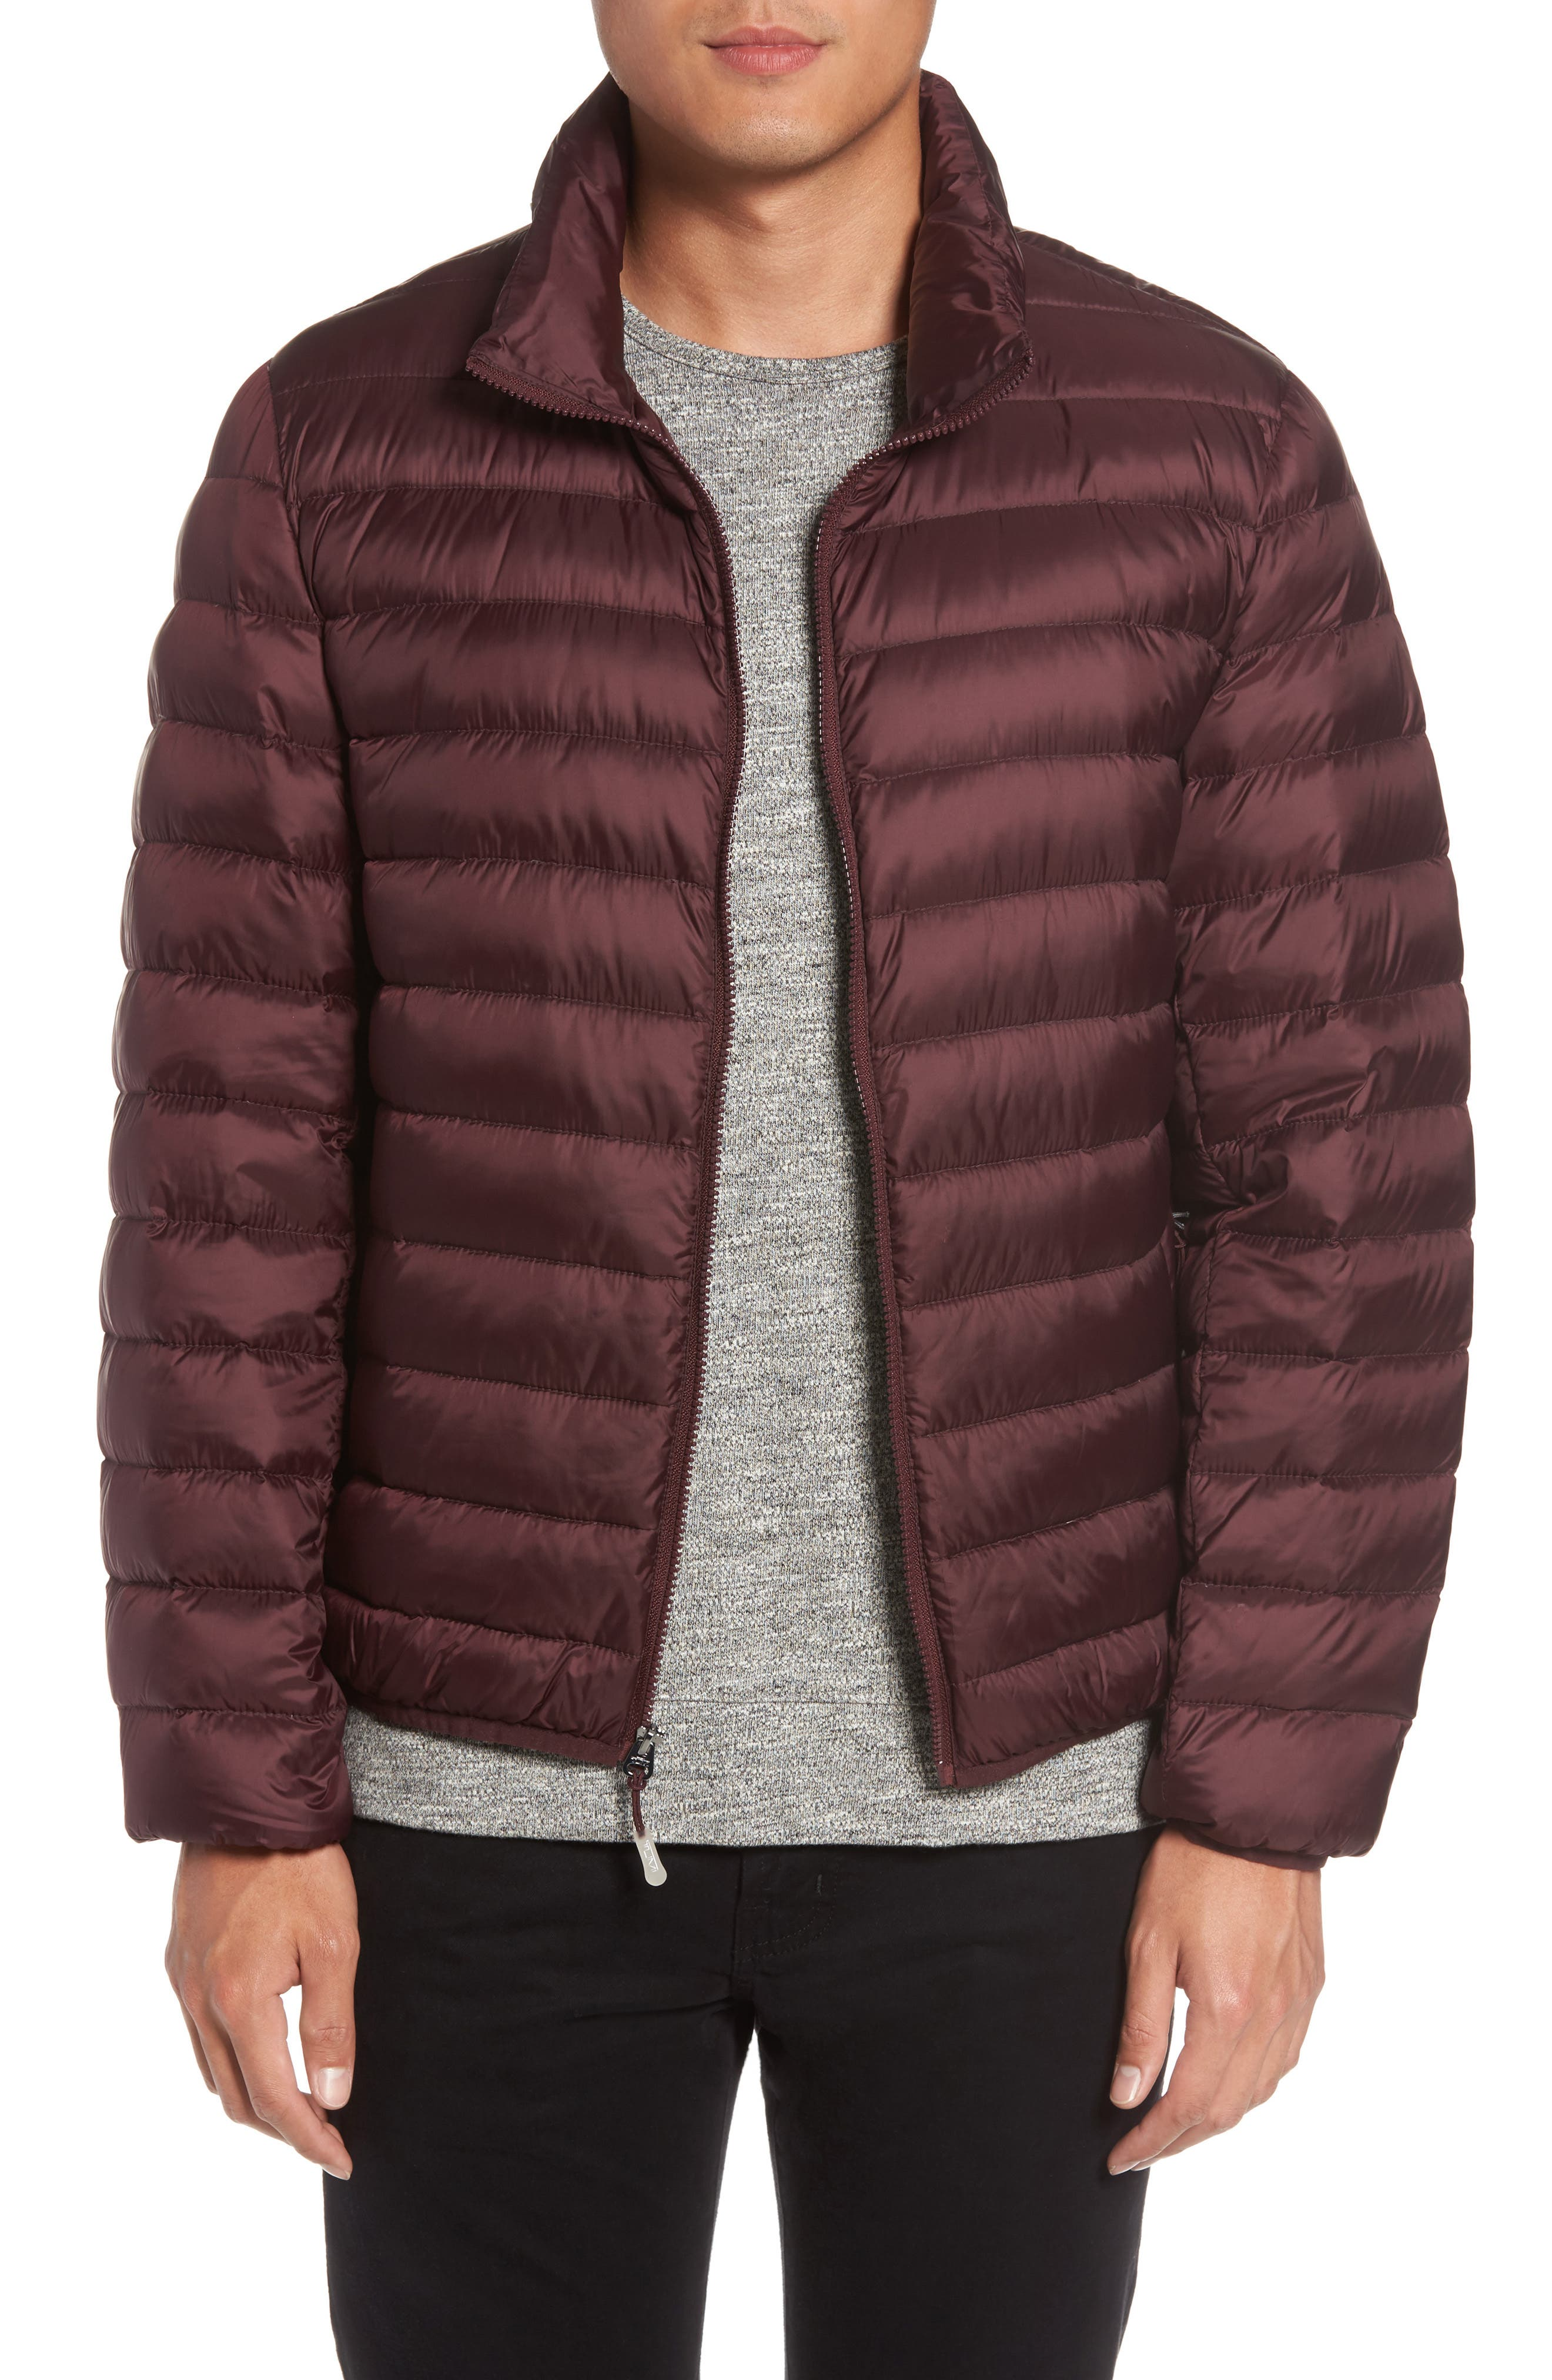 Alternate Image 1 Selected - Tumi'Pax' PackableQuilted Jacket